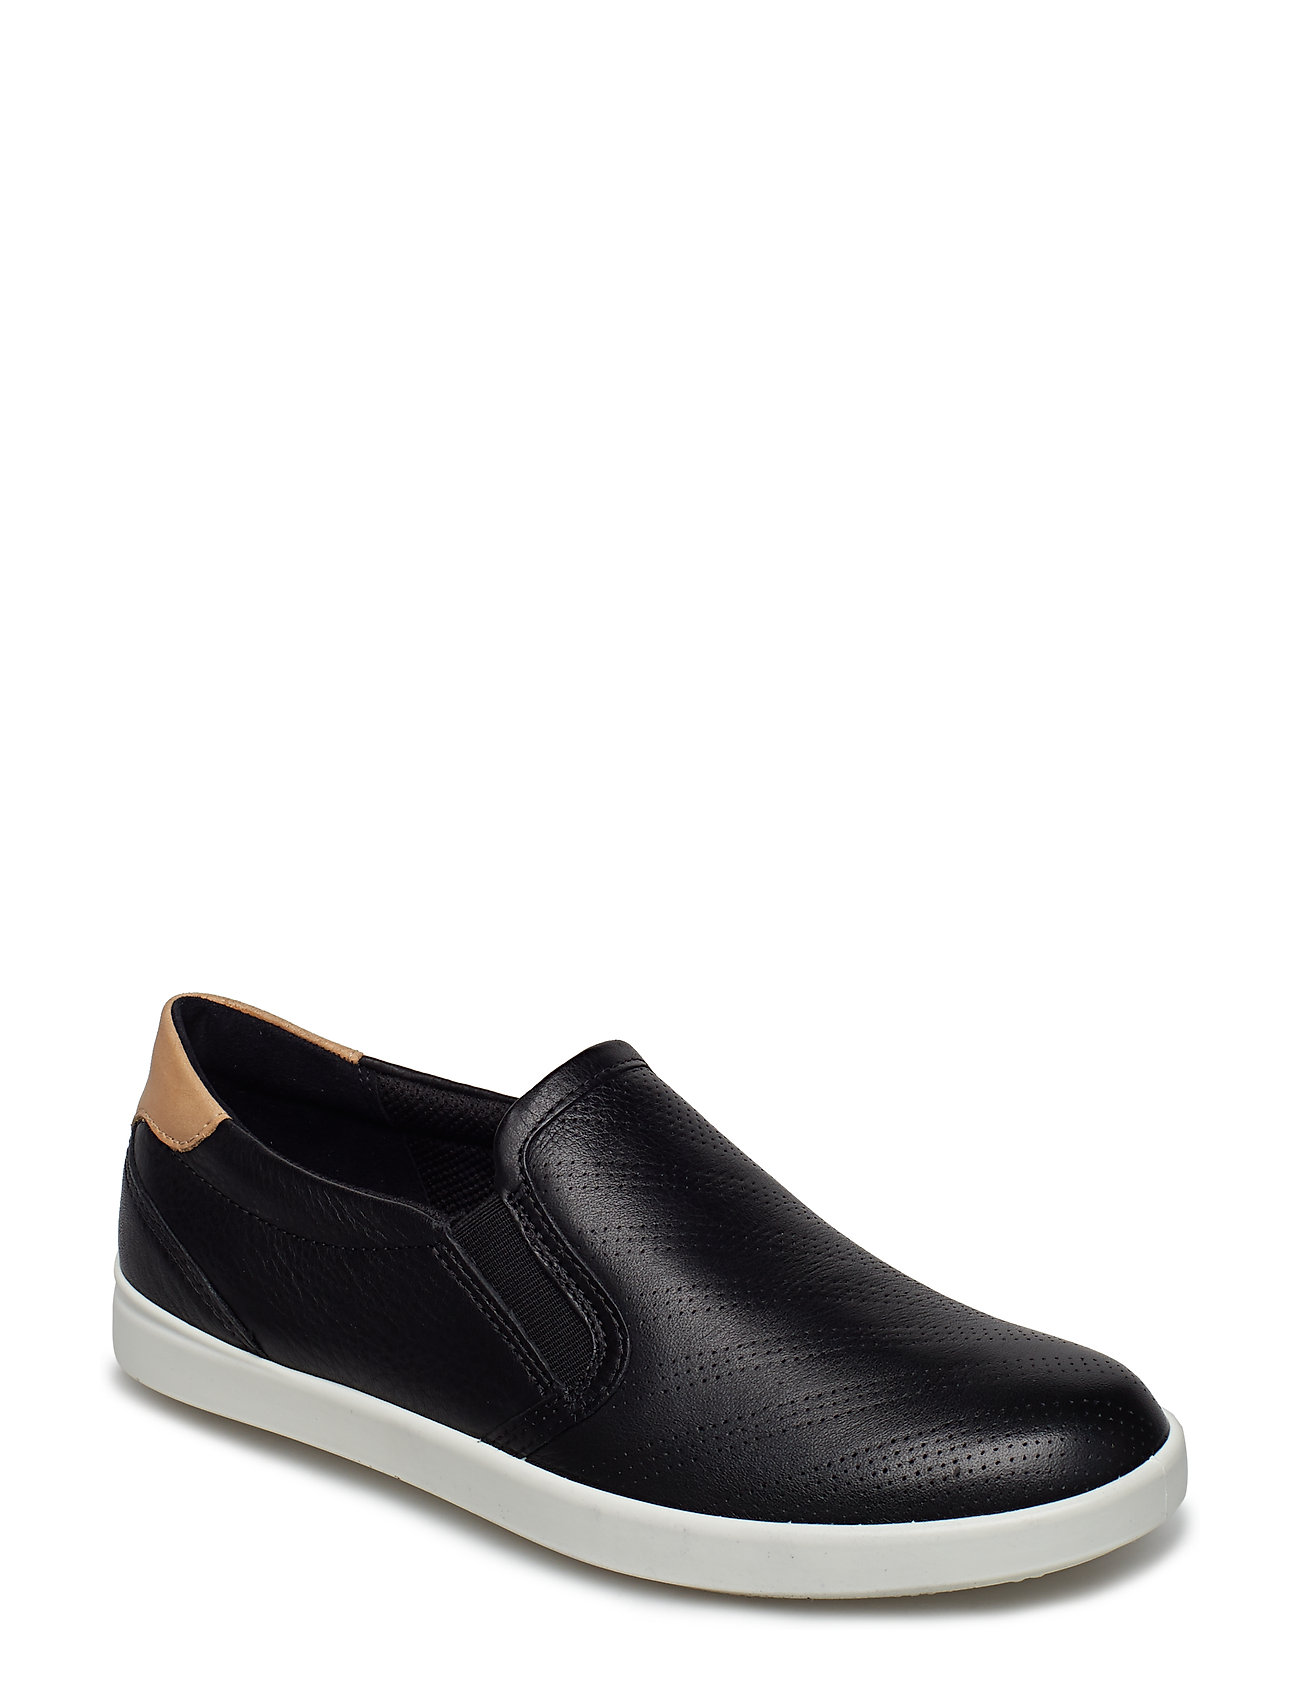 Image of Leisure Sneakers Sort ECCO (3473529347)